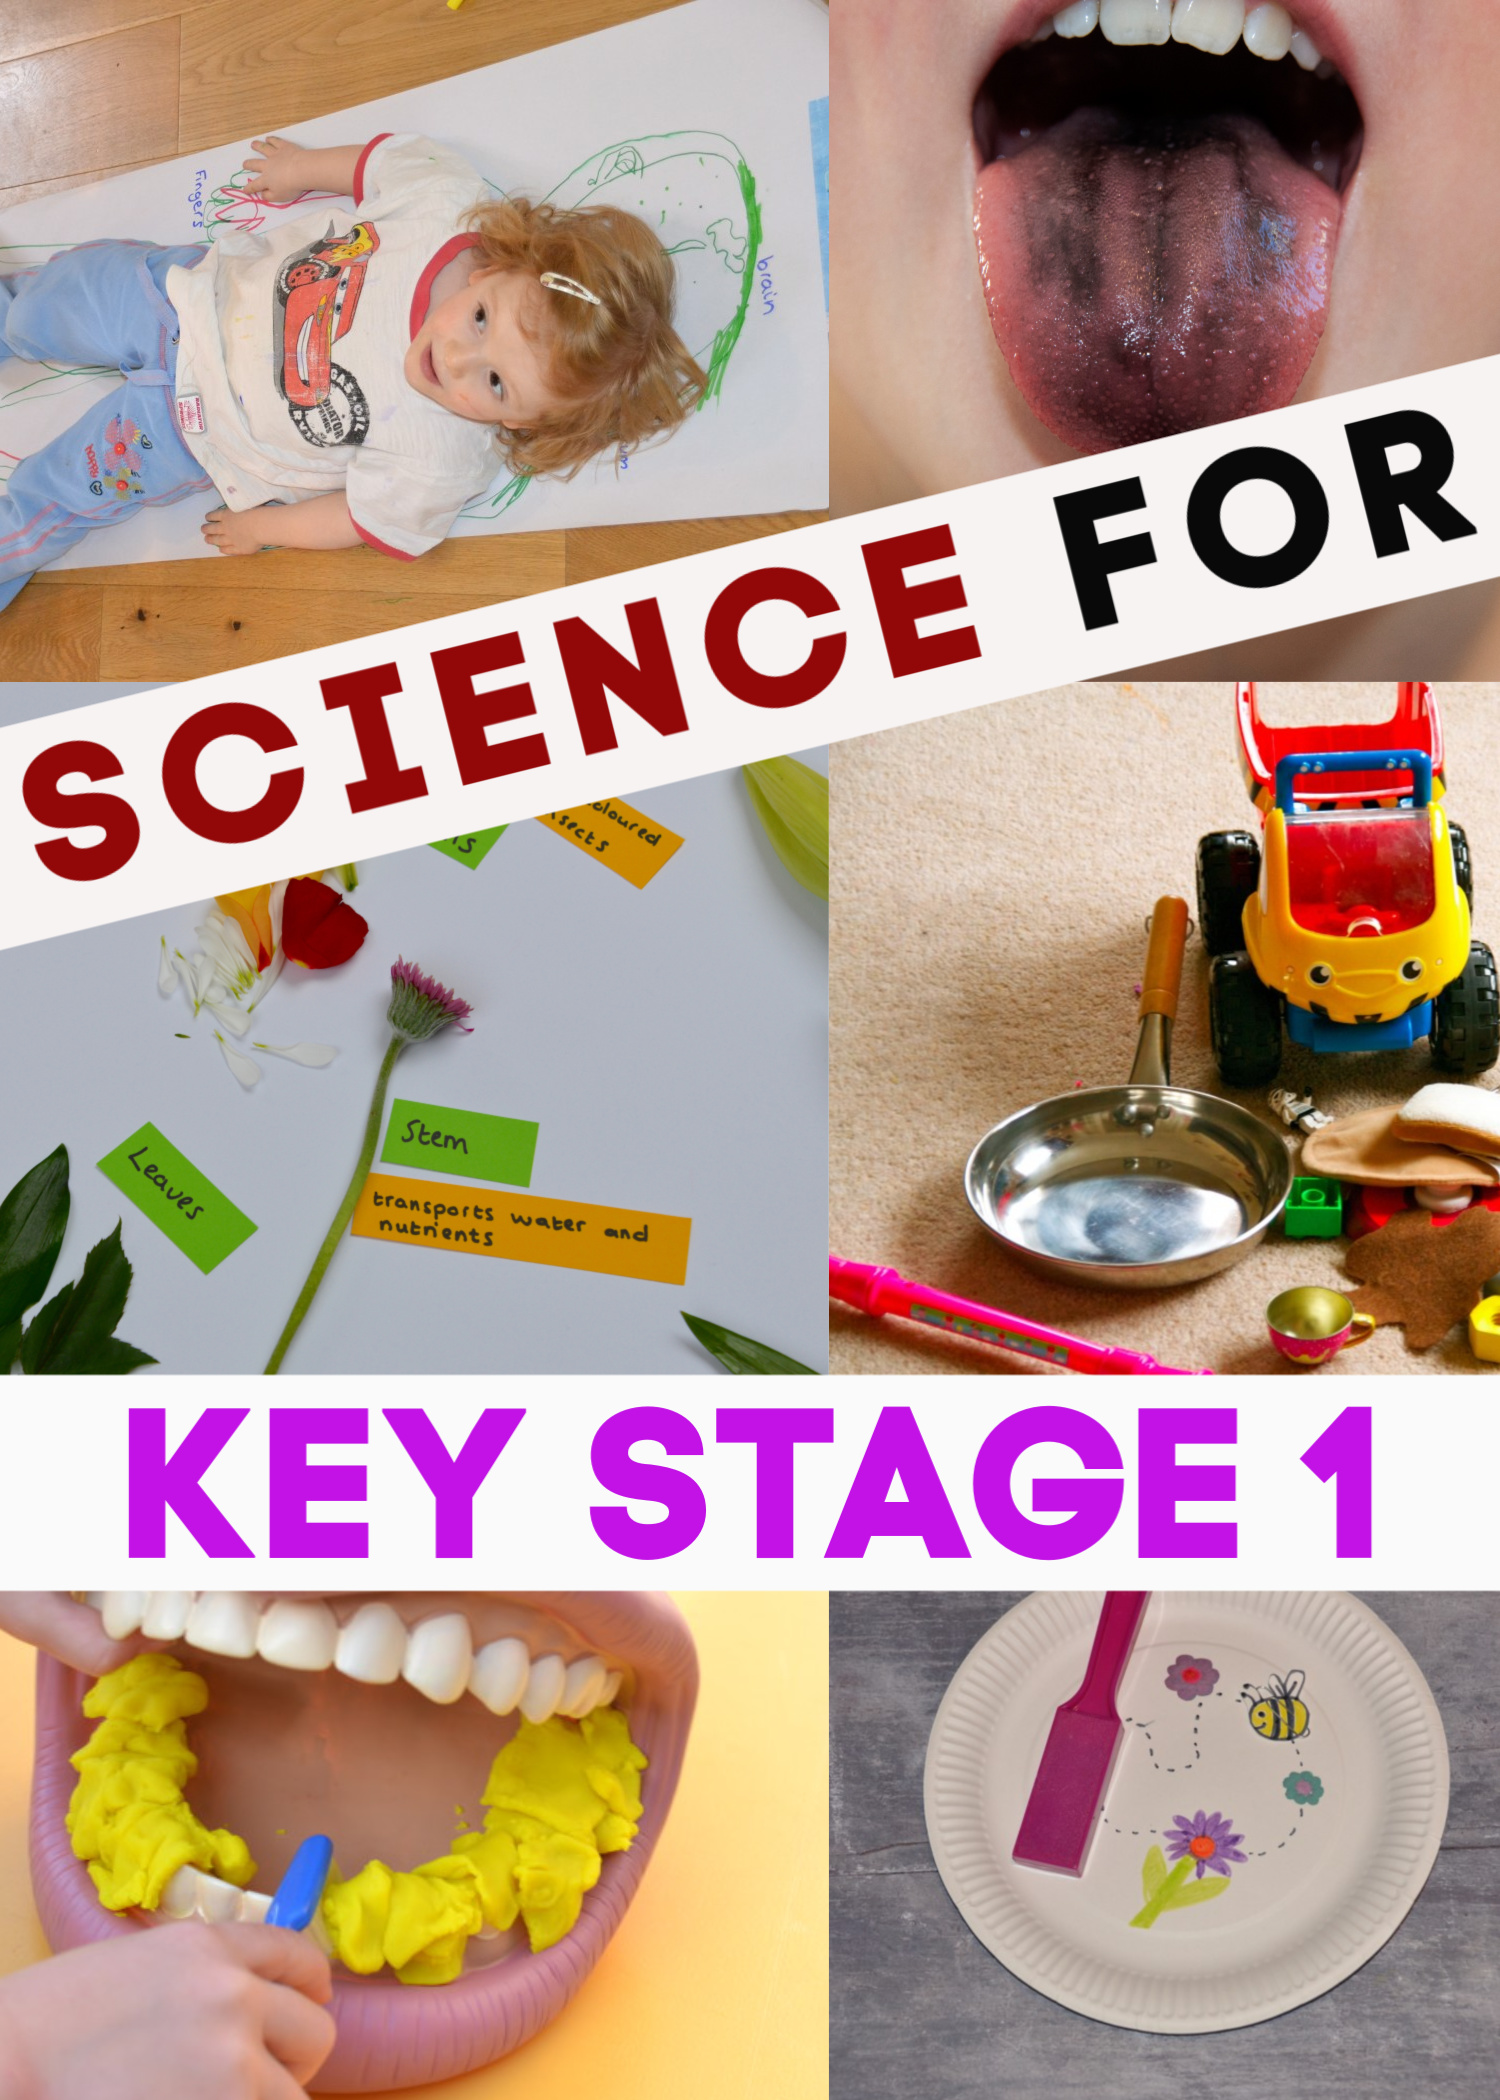 Easy science experiments for Key Stage 1 children. Topic covered are animals including humans, nutrition, light, forces and materials #KeyStage1 #Scienceforkids #scienceexperimentsforkids